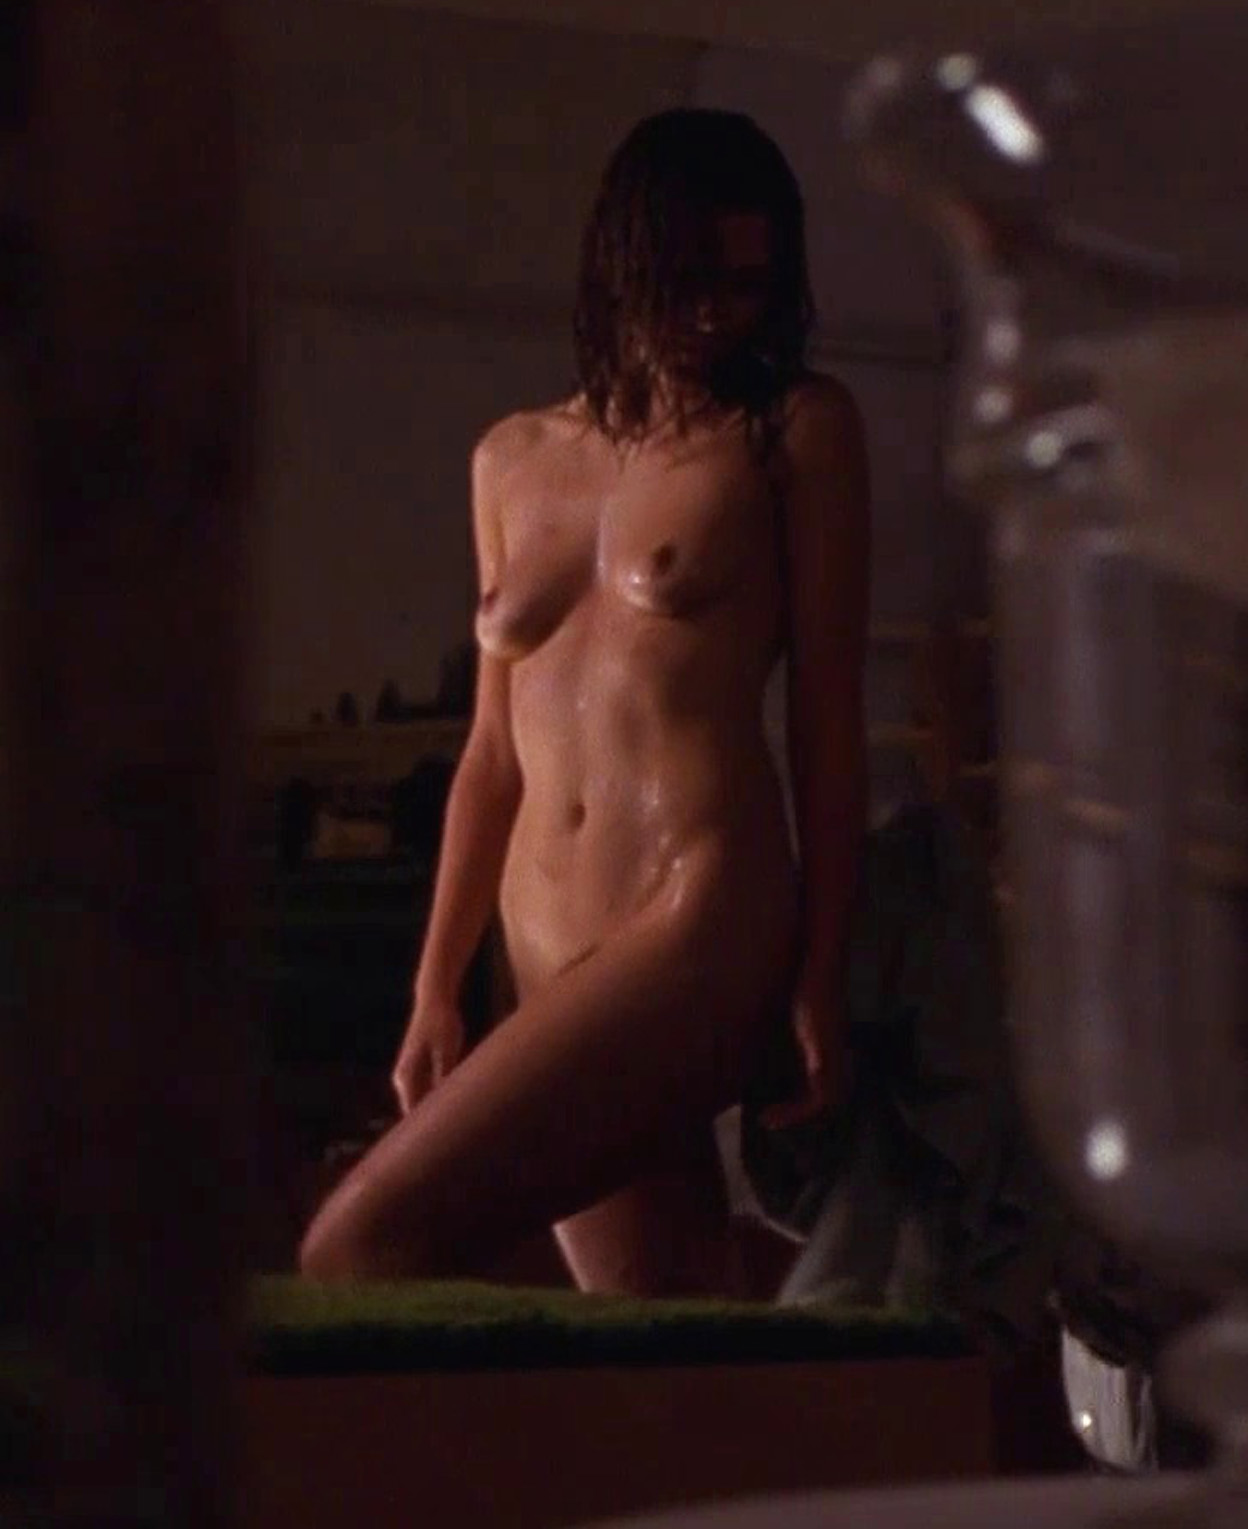 Maggie gyllenhaal topless real blowjob 5